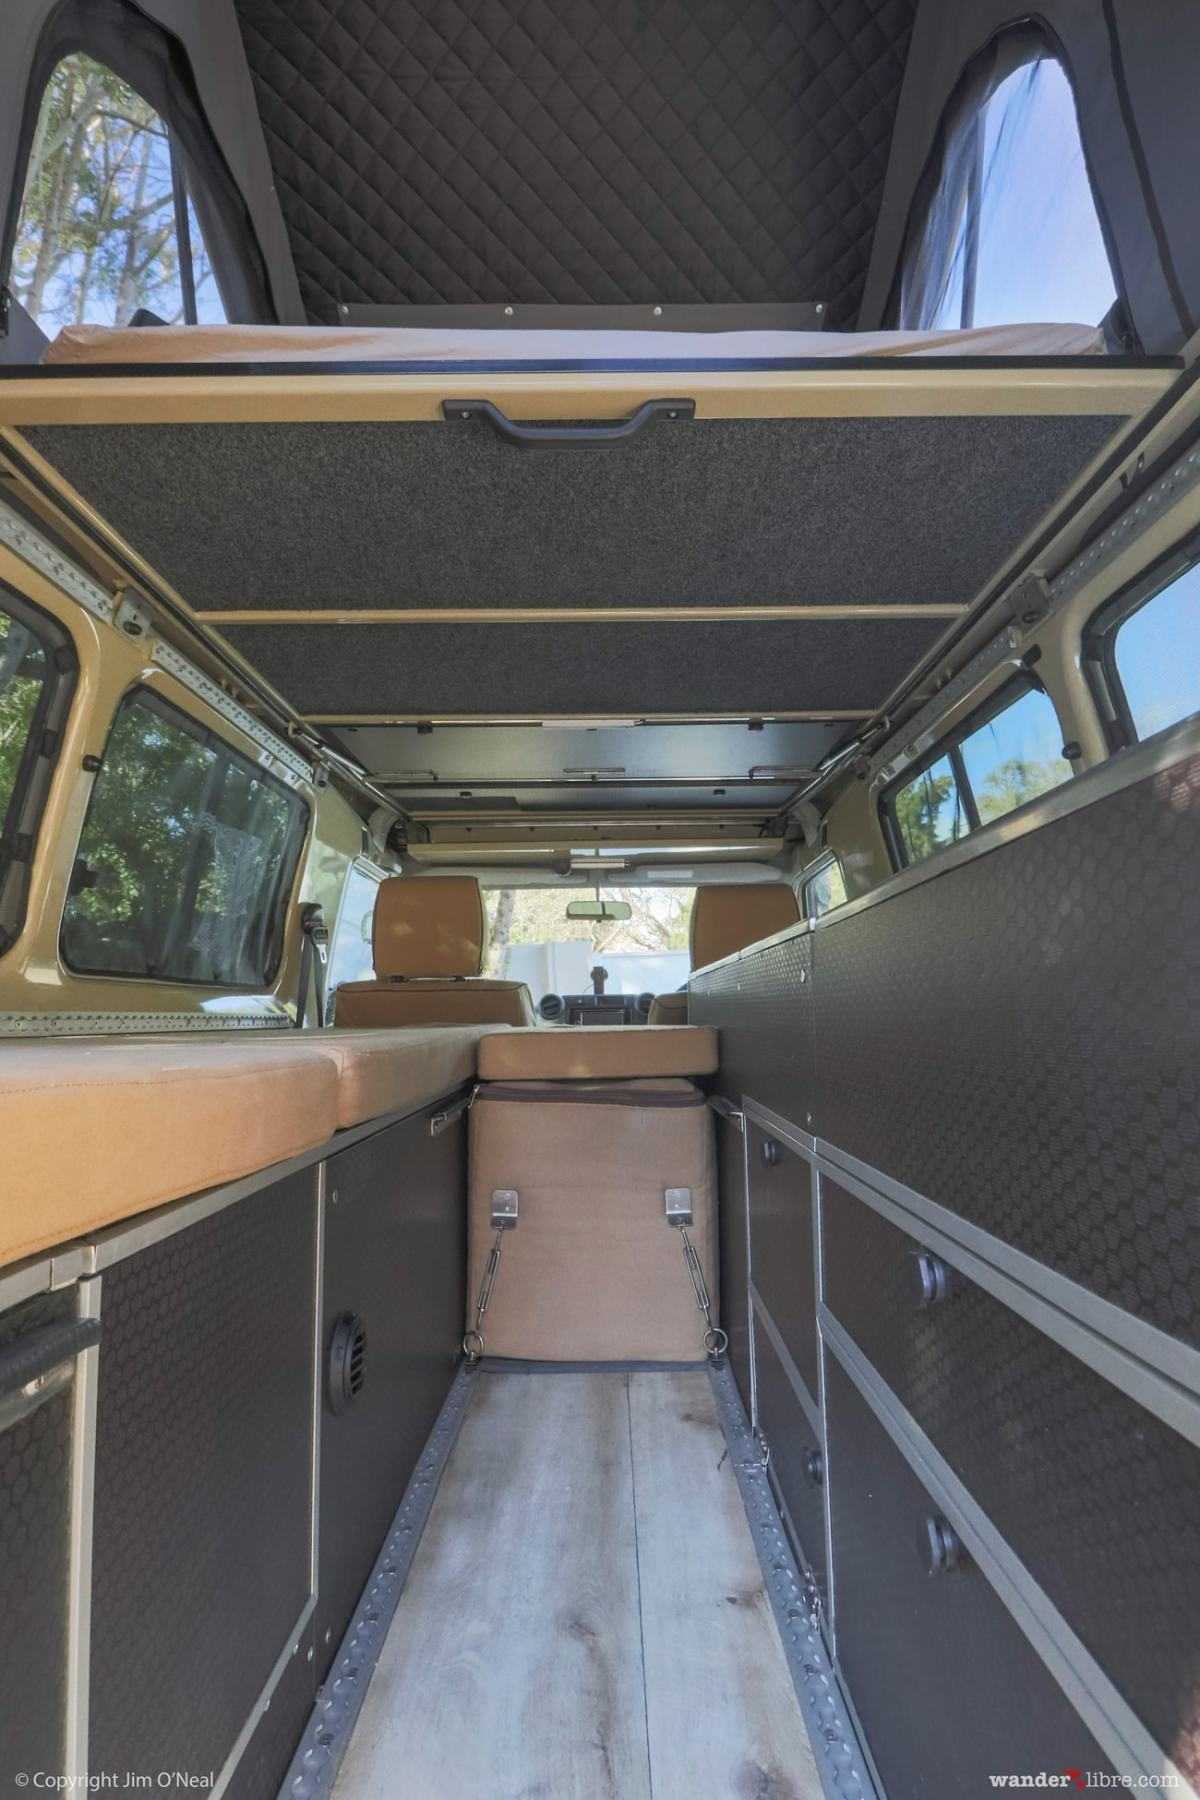 Land Cruiser Troop Carrier Camper Conversion Pop-Top Roof with Bed Down